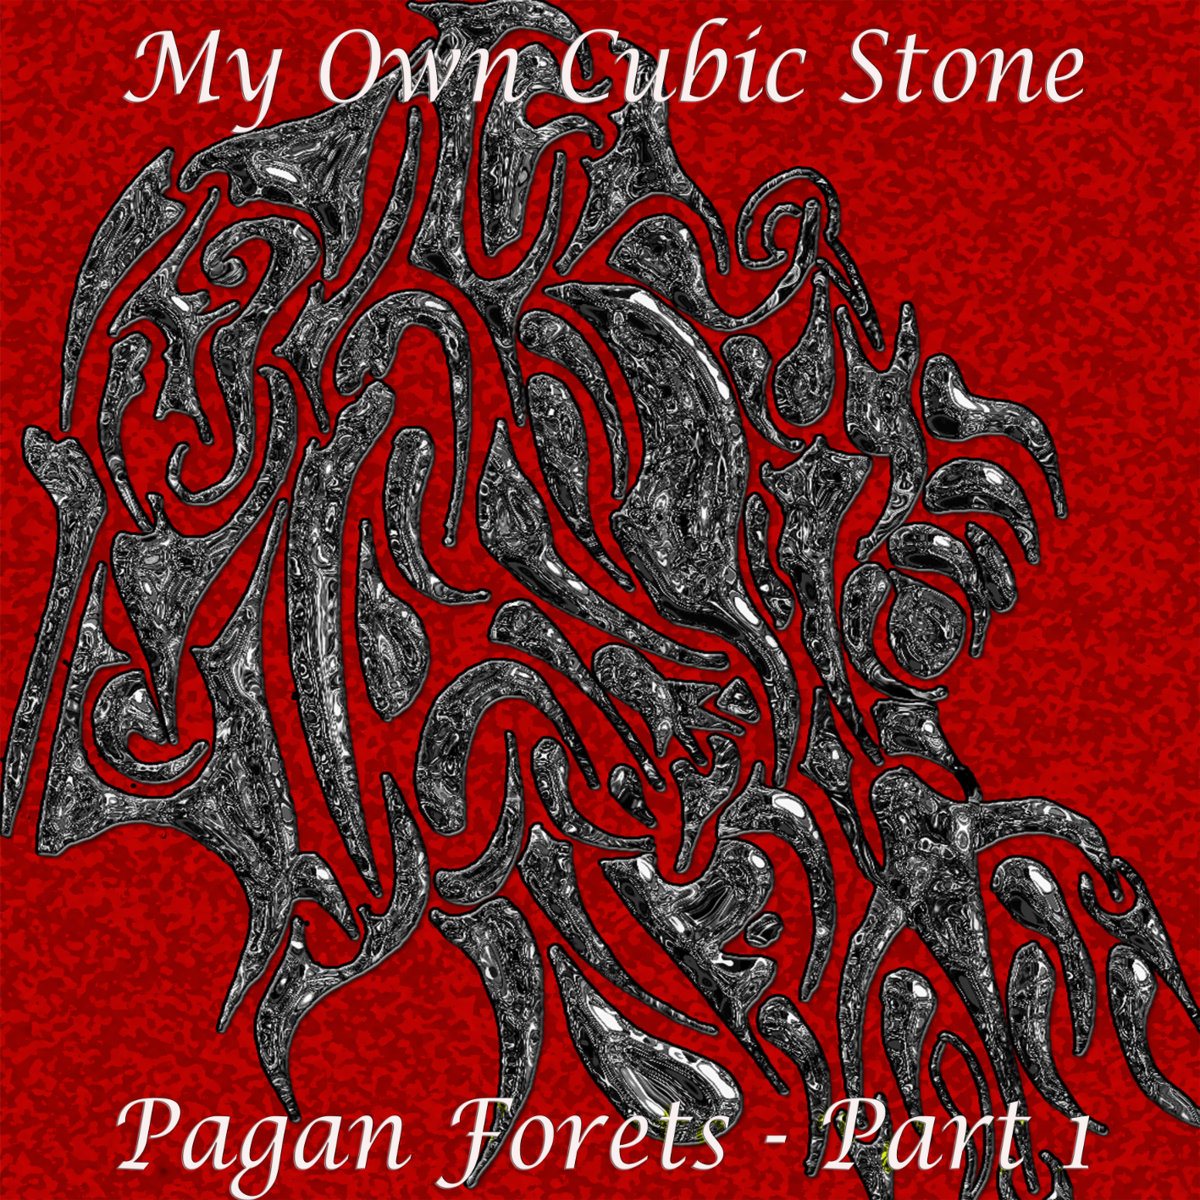 https://dhaturarecords.bandcamp.com/album/pagan-forest-part-i